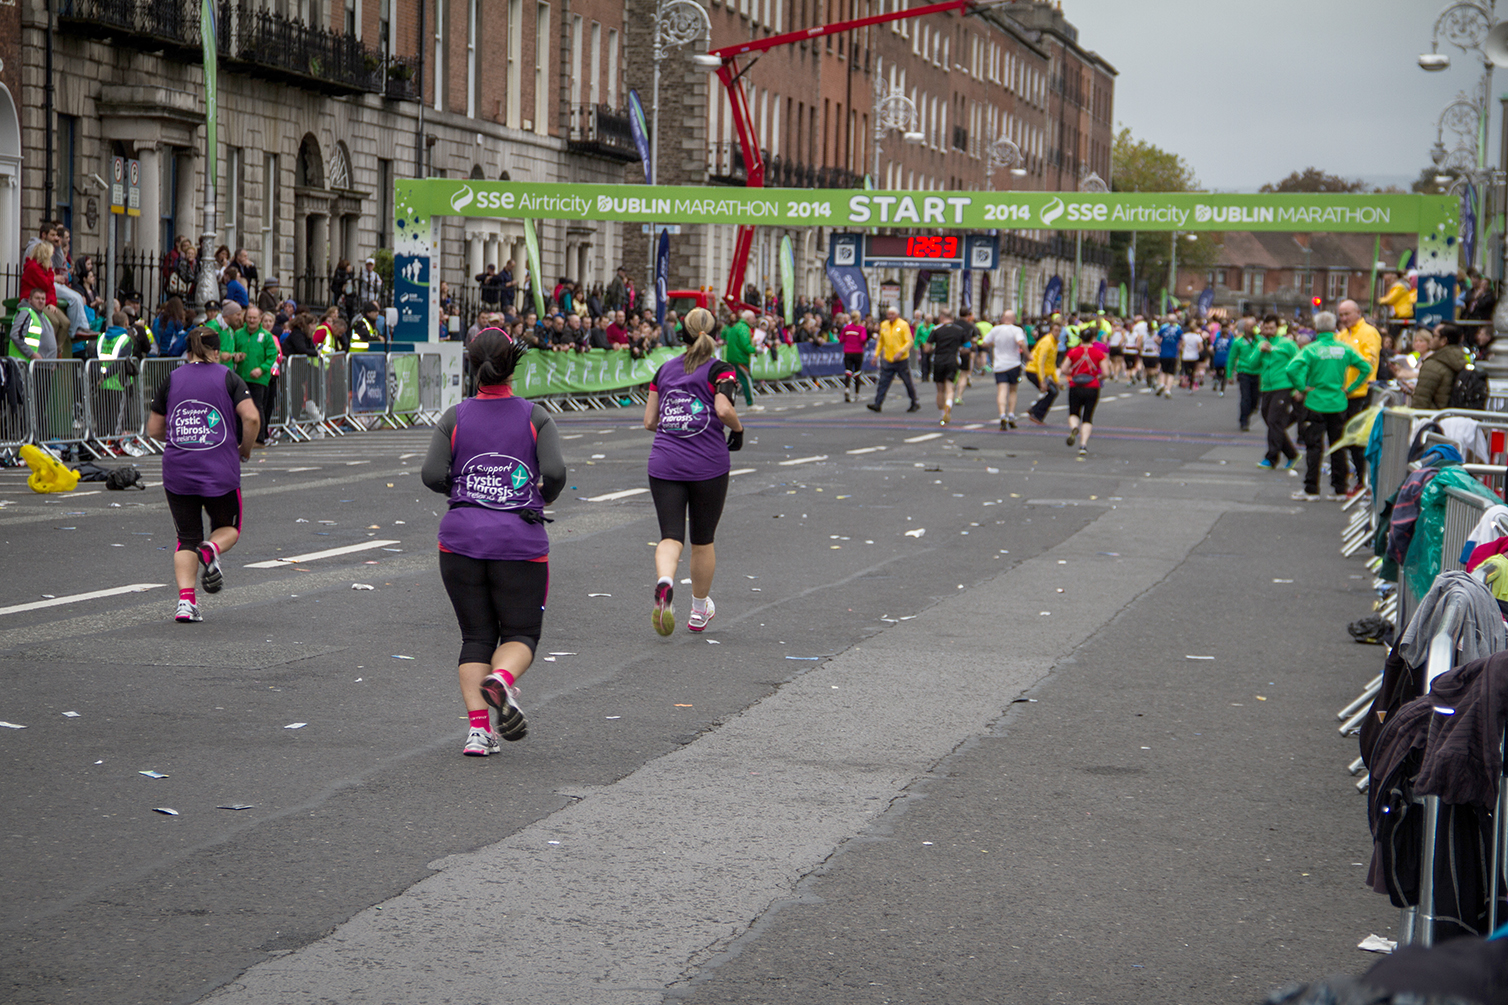 Runners approach the start line of the Dublin city marathon